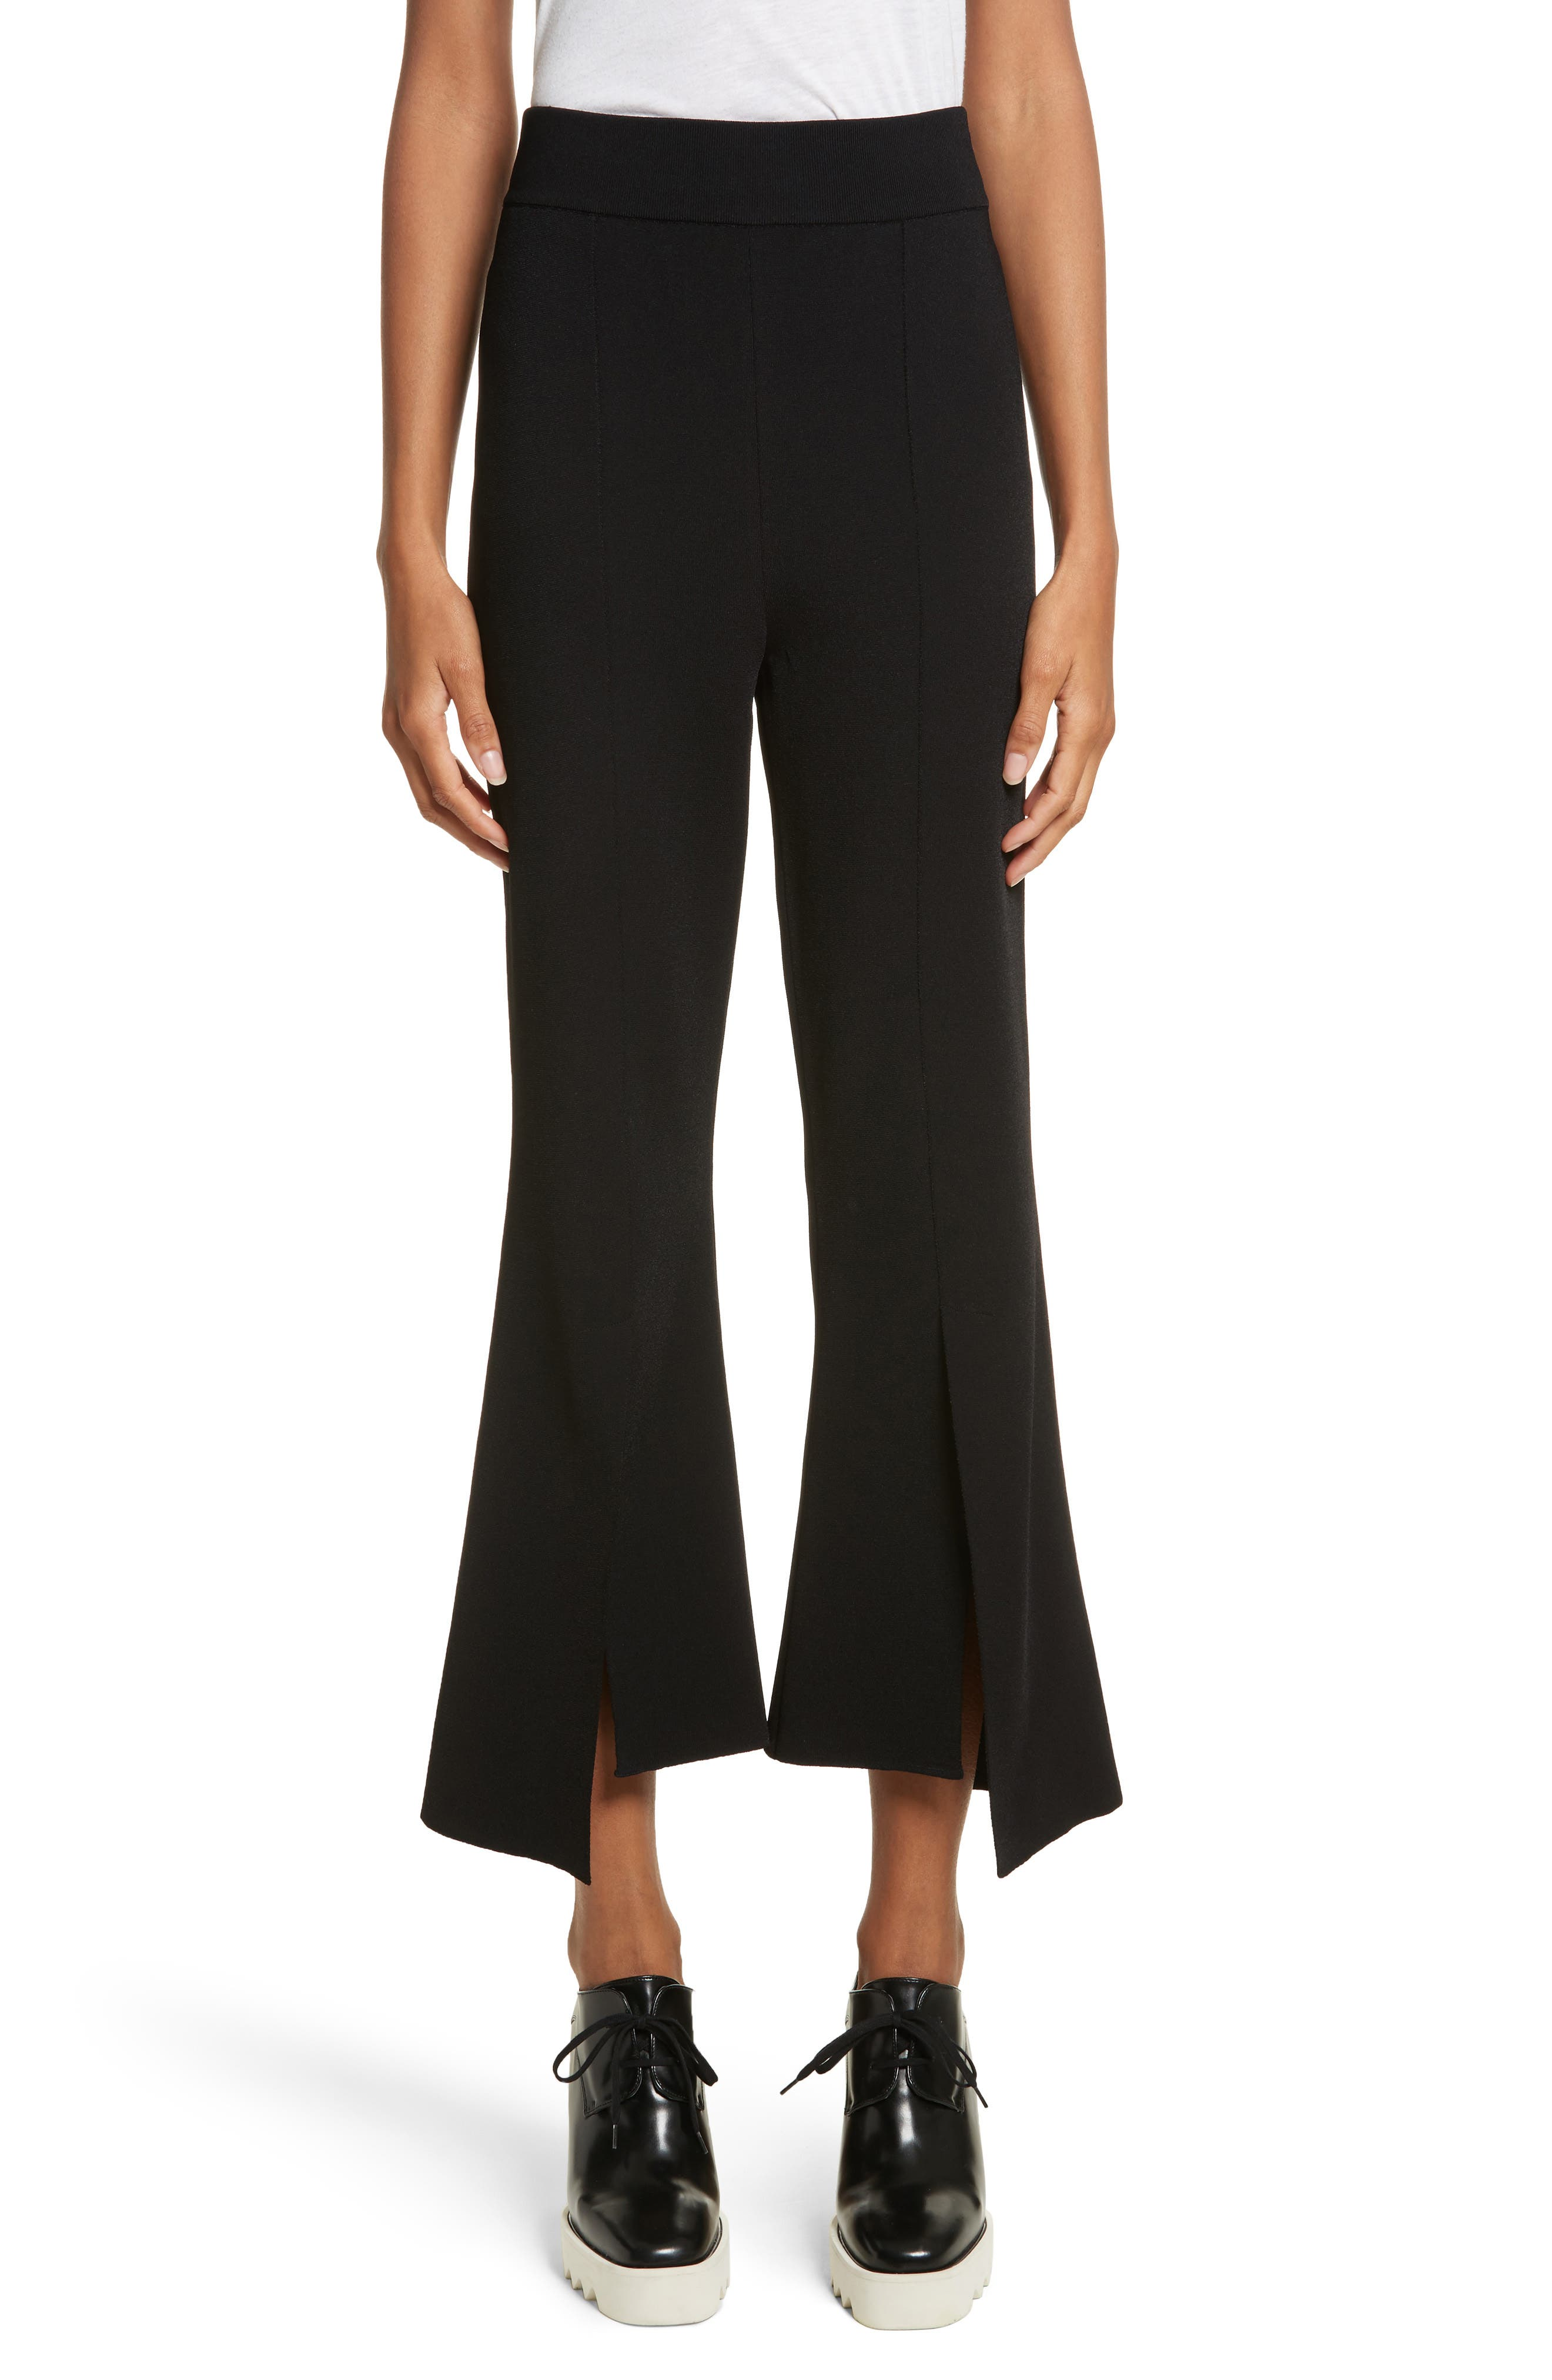 Alternate Image 1 Selected - Stella McCartney Compact Knit Crop Flare Pants